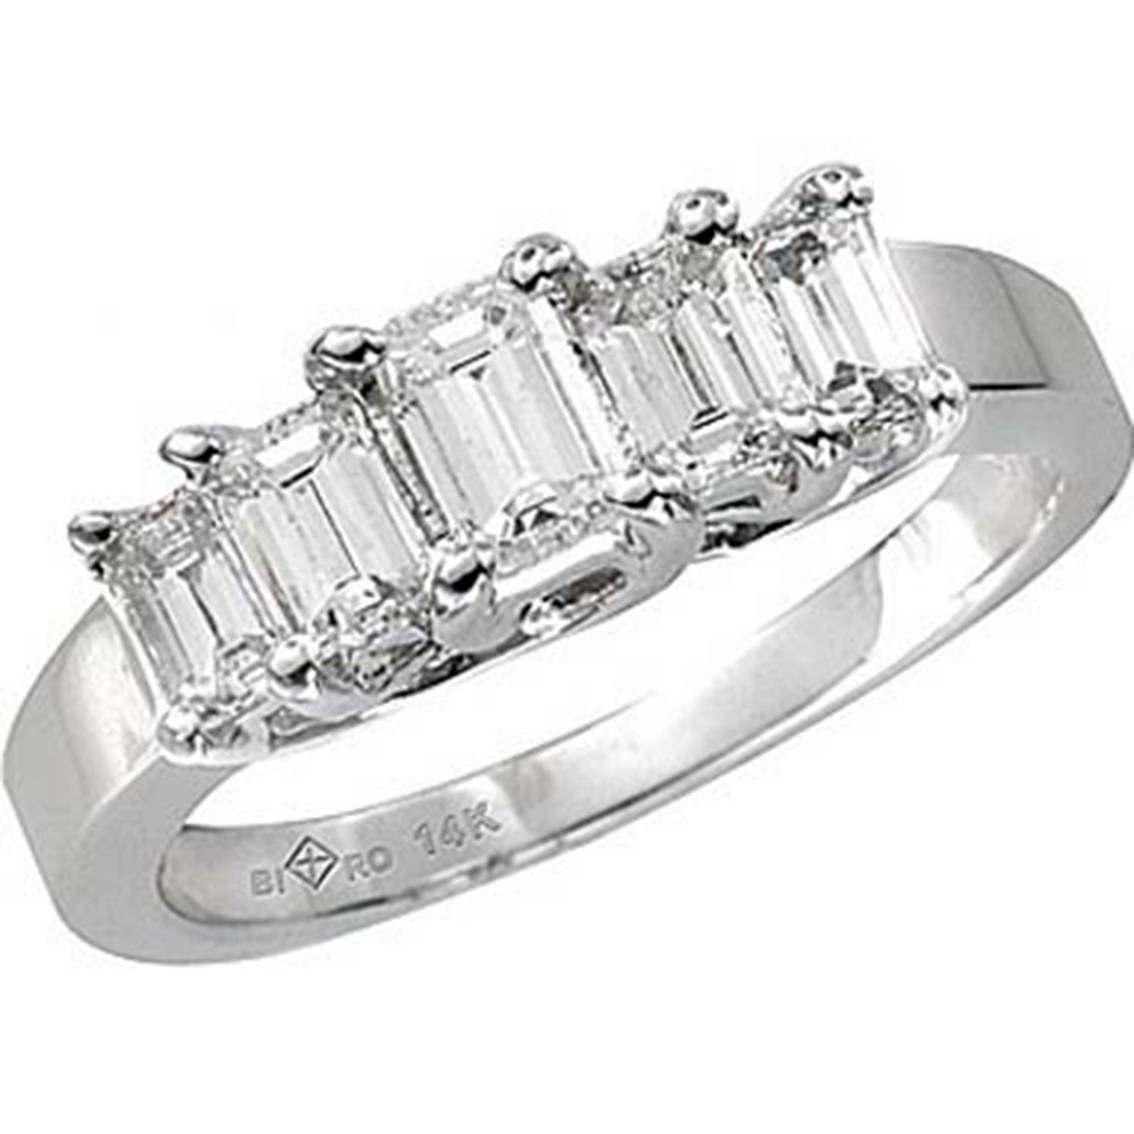 14K White Gold 1 Ctw Cindy Graduated 5 Stone Emerald Cut Diamond Throughout Best And Newest White Gold Anniversary Rings (View 4 of 25)